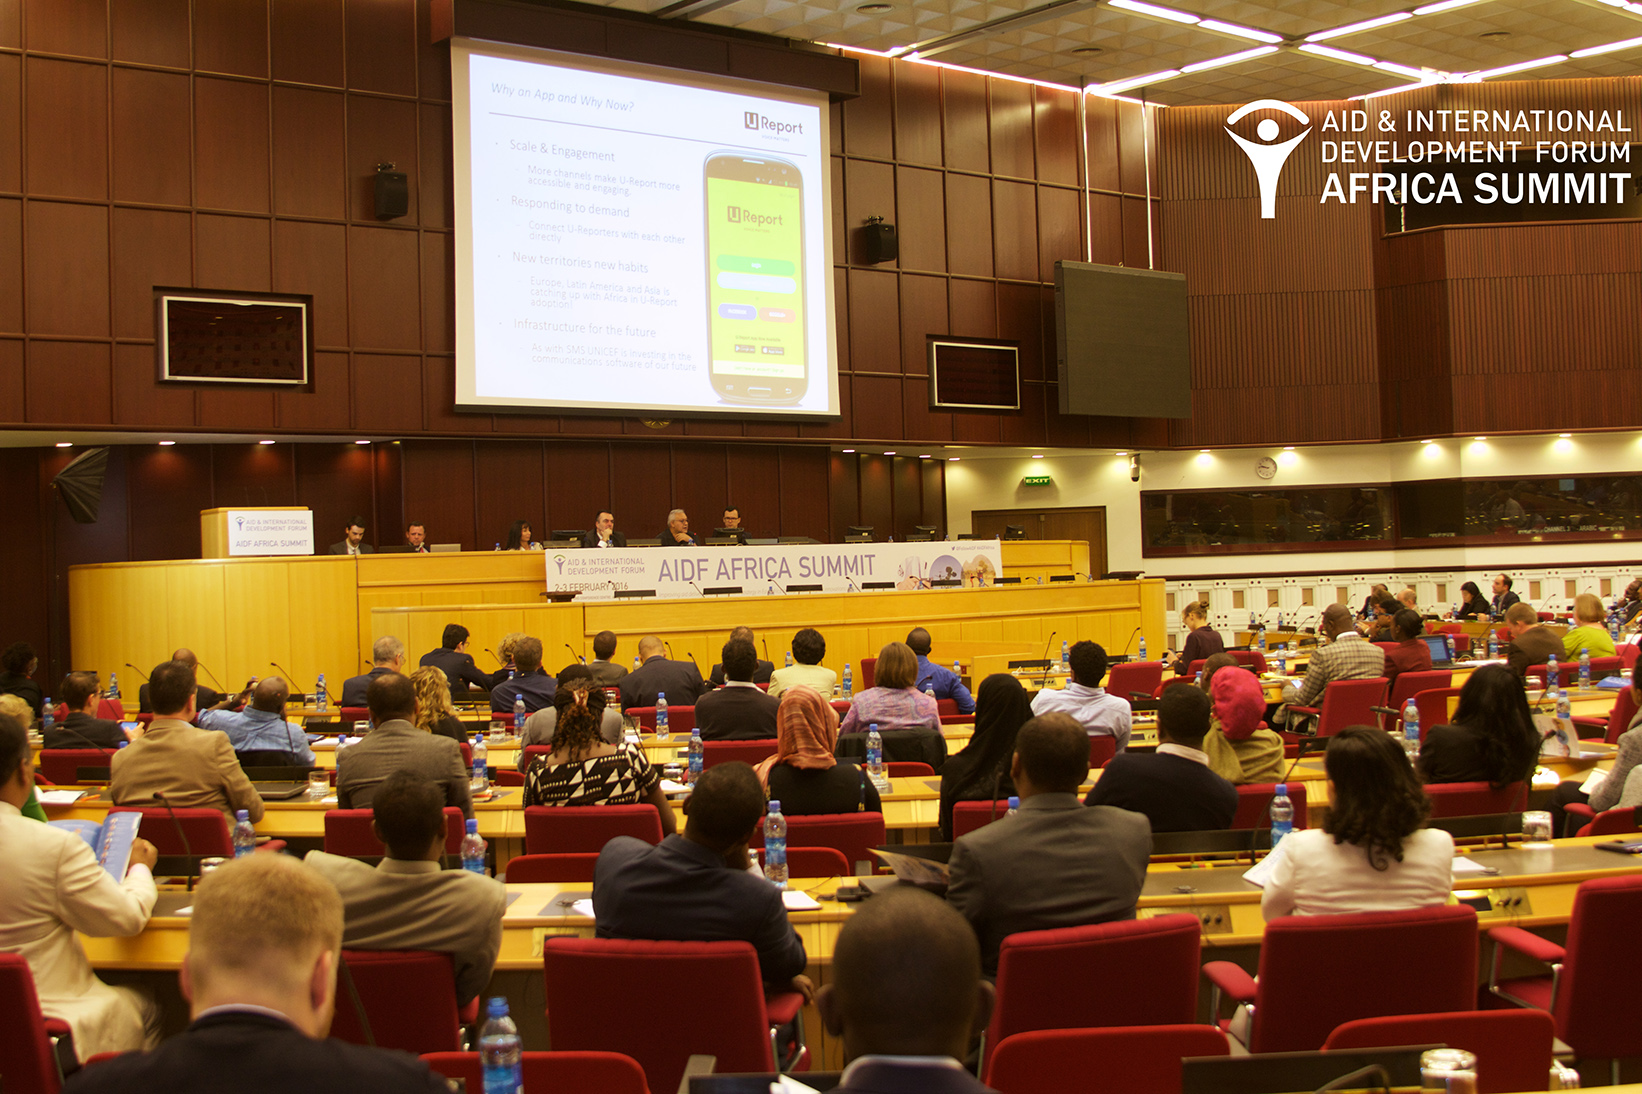 Ministry of ICT Kenya to give keynote address at Aid & Development Africa Summit in Nairobi